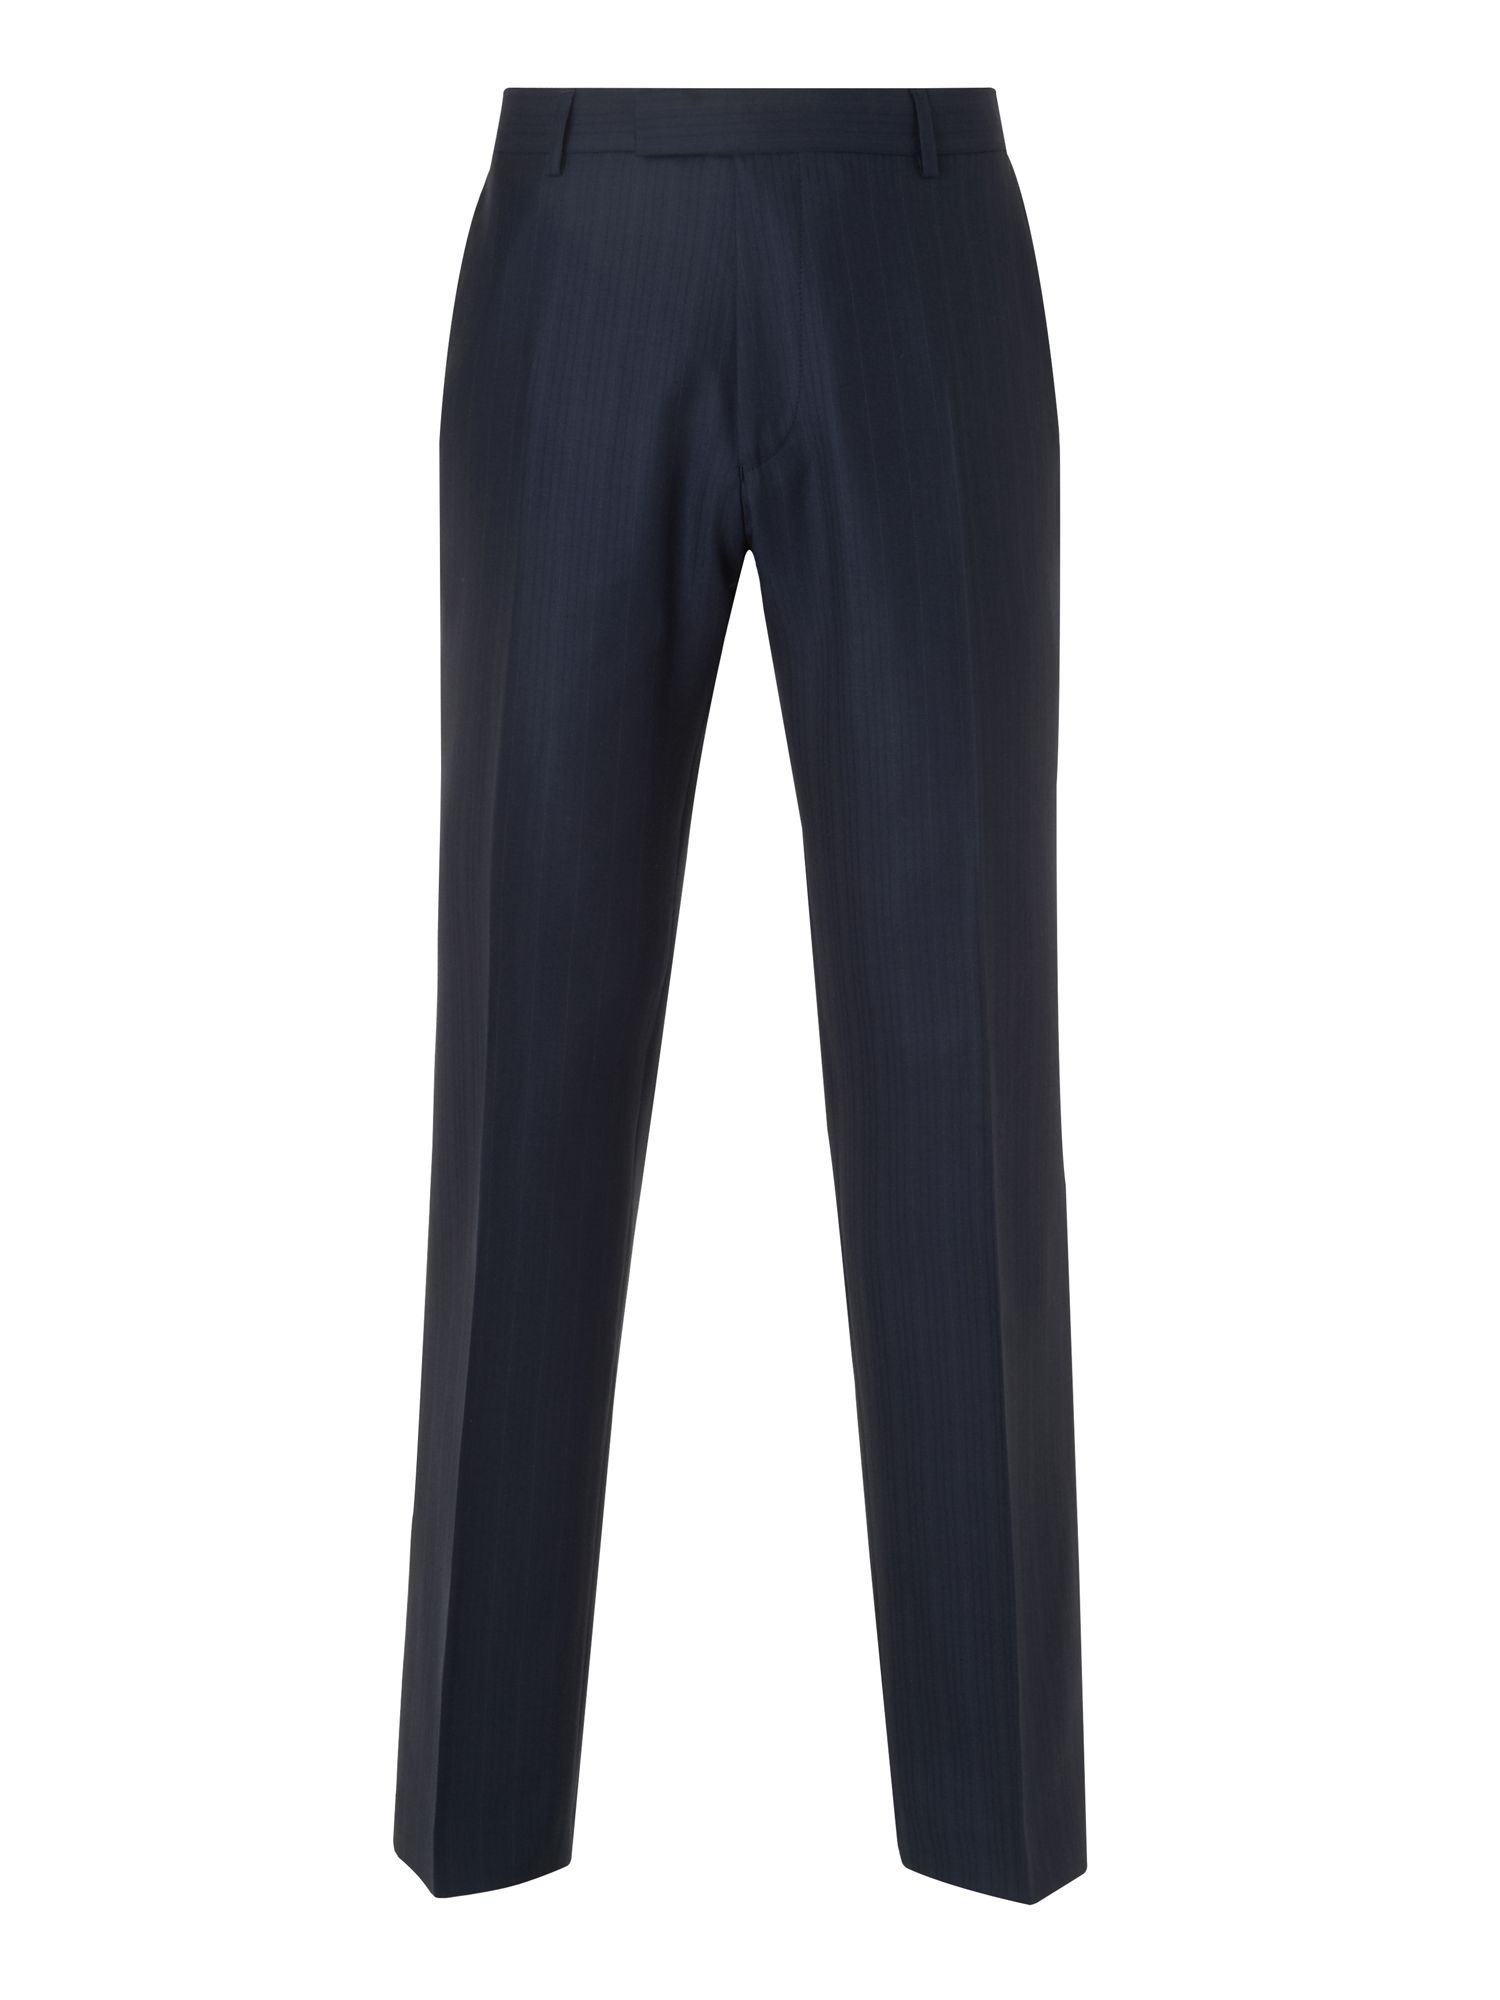 Lanolin twill banker stripe trousers